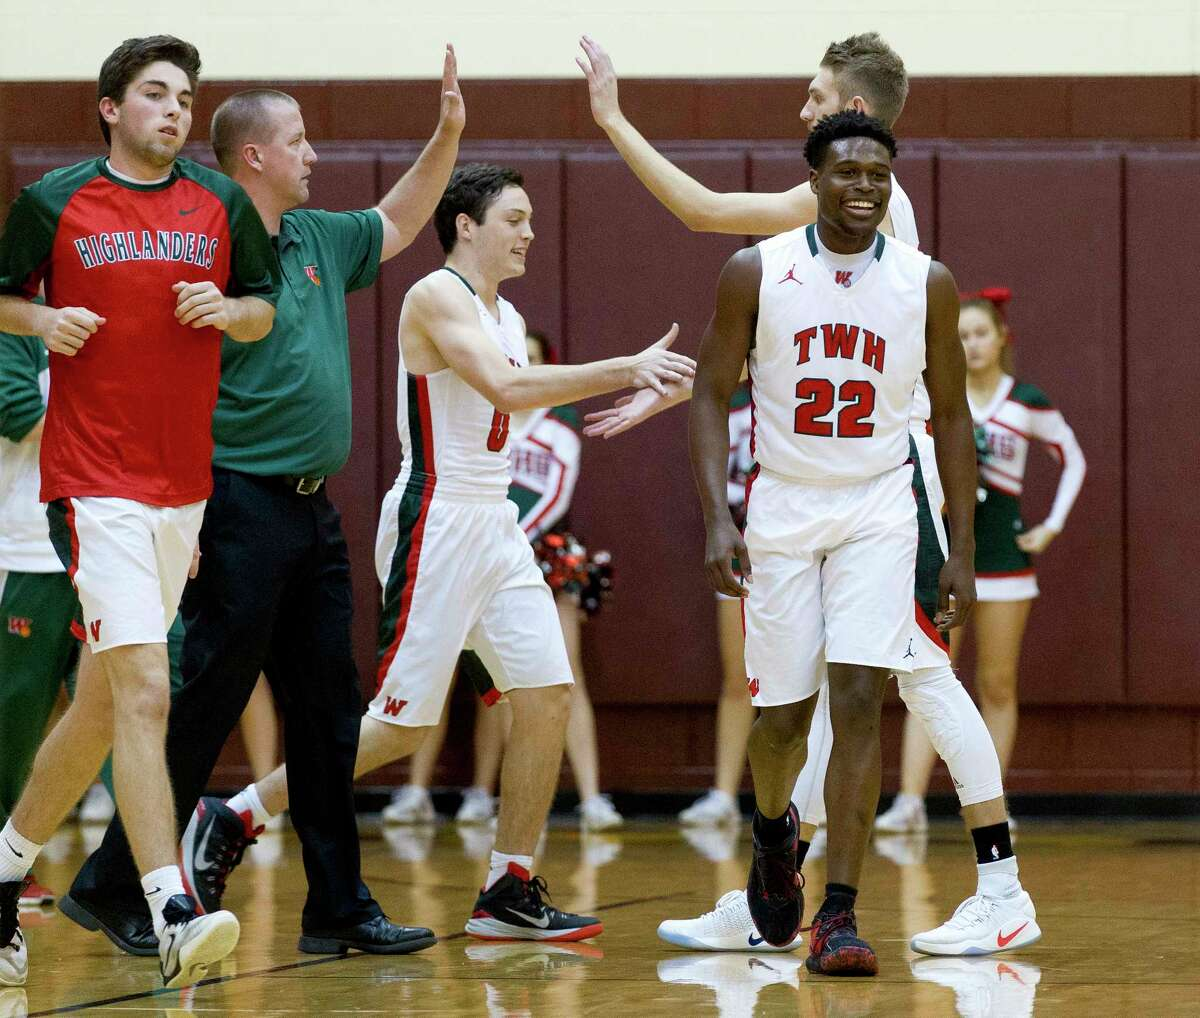 The Woodlands guard Romello Wilbert (22) smiles after a shot by guard Sammy Williams (30) that forced a timeout by Mesquite Horn during the first quarter of a Region II-6A high school basketball bi-district playoff game at Johnson Activities Center Tuesday, Feb. 21, 2017, in Fairfield. The Woodlands defeated Mesquite Horn 64-42.